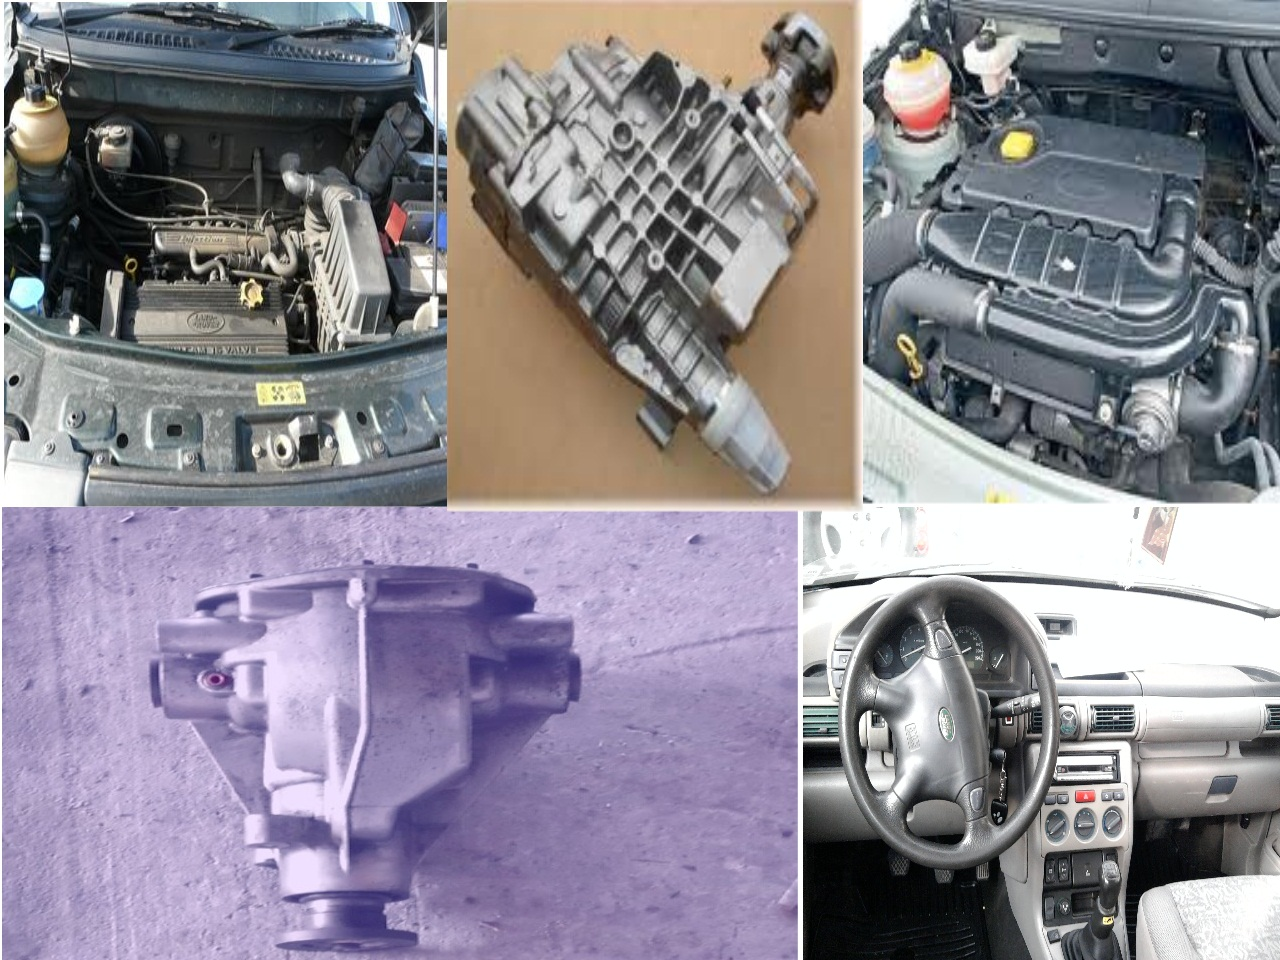 Grup spate (diferential) 98-06 Land Rover Freelander - 10 Noiembrie 2012 - Poza 1